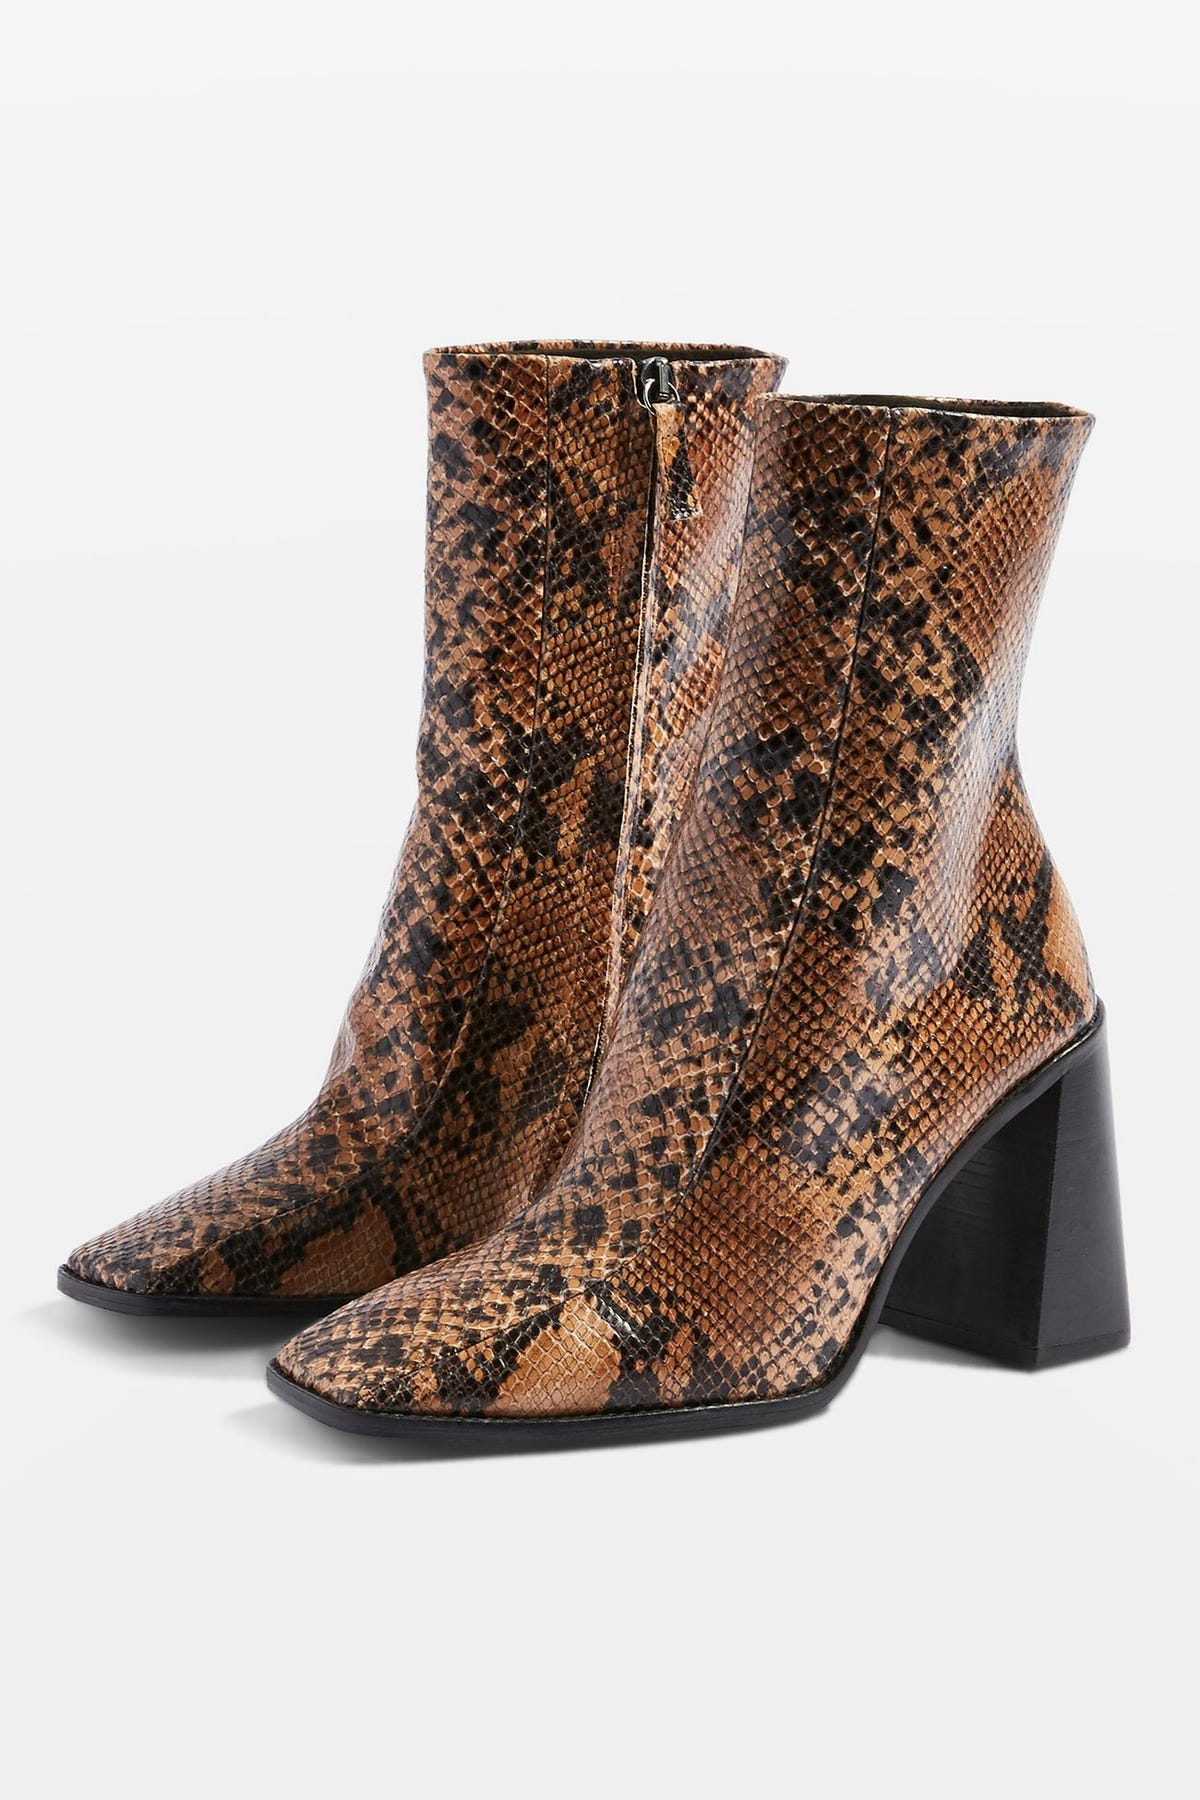 fbf15a9b275 Snakeskin Print Shoe and Boot Trend At NYFW